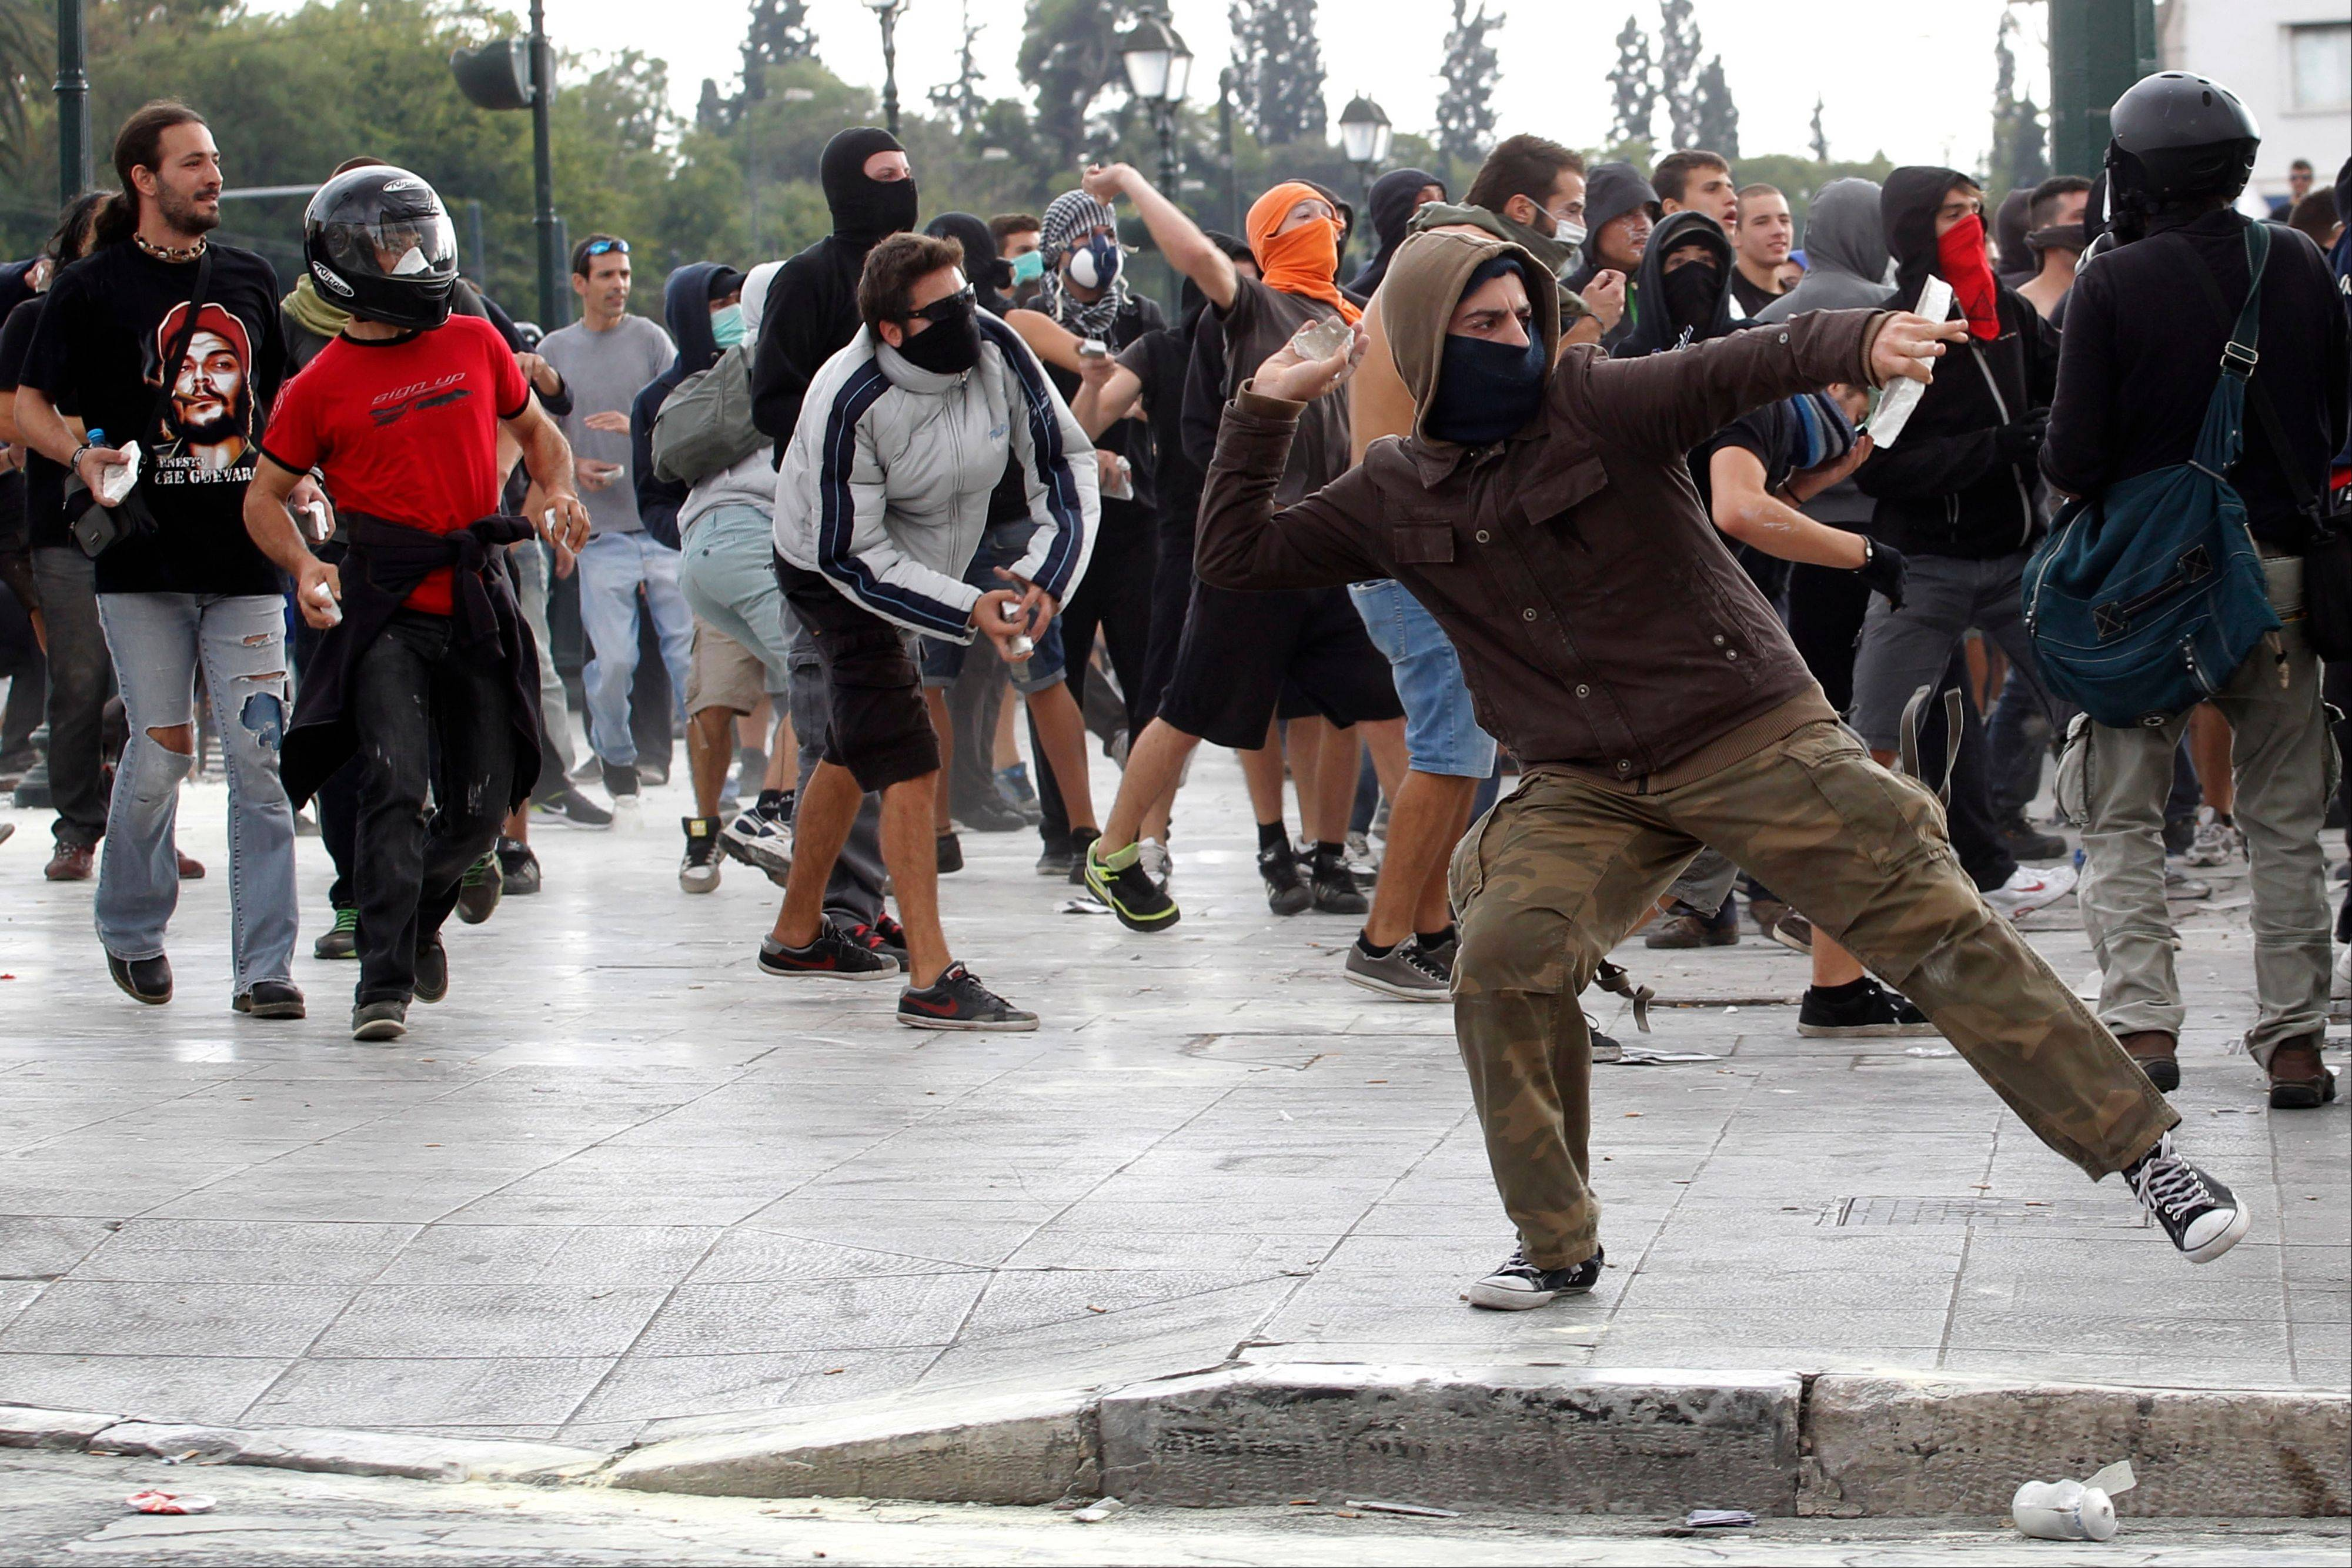 Protesters throw stones to riot police Tuesday during clashes in central Athens. German Chancellor Angela Merkel got a hostile reception from ordinary Greeks Tuesday when she flew into Athens on her first visit to the country since its debt crisis erupted three years ago.